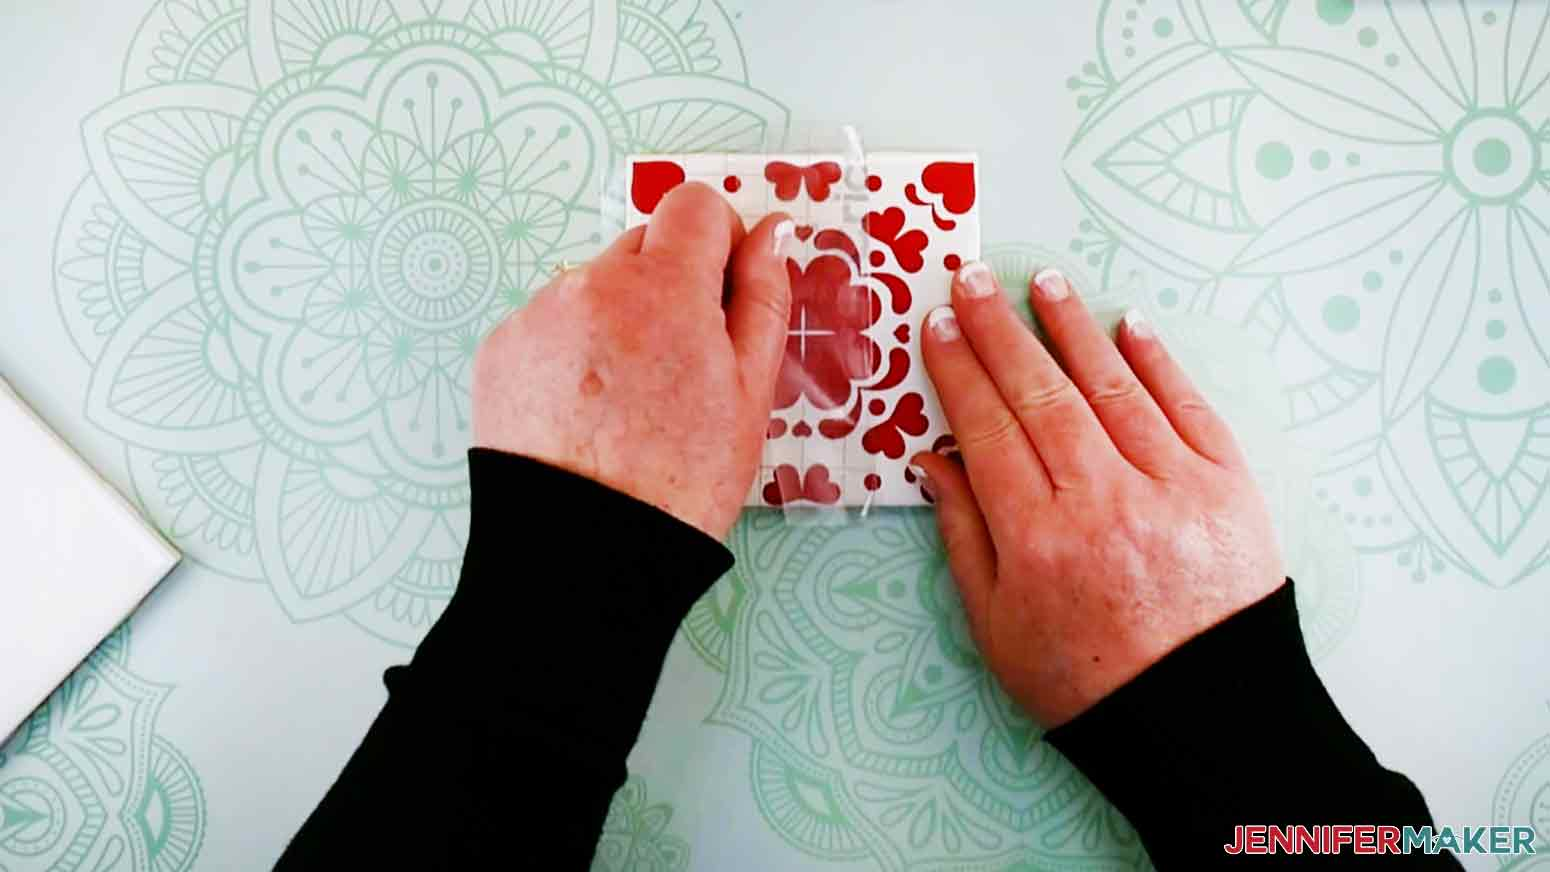 Carefully remove the transfer tape from the vinyl for my DIY Plant Pot with Tiles design